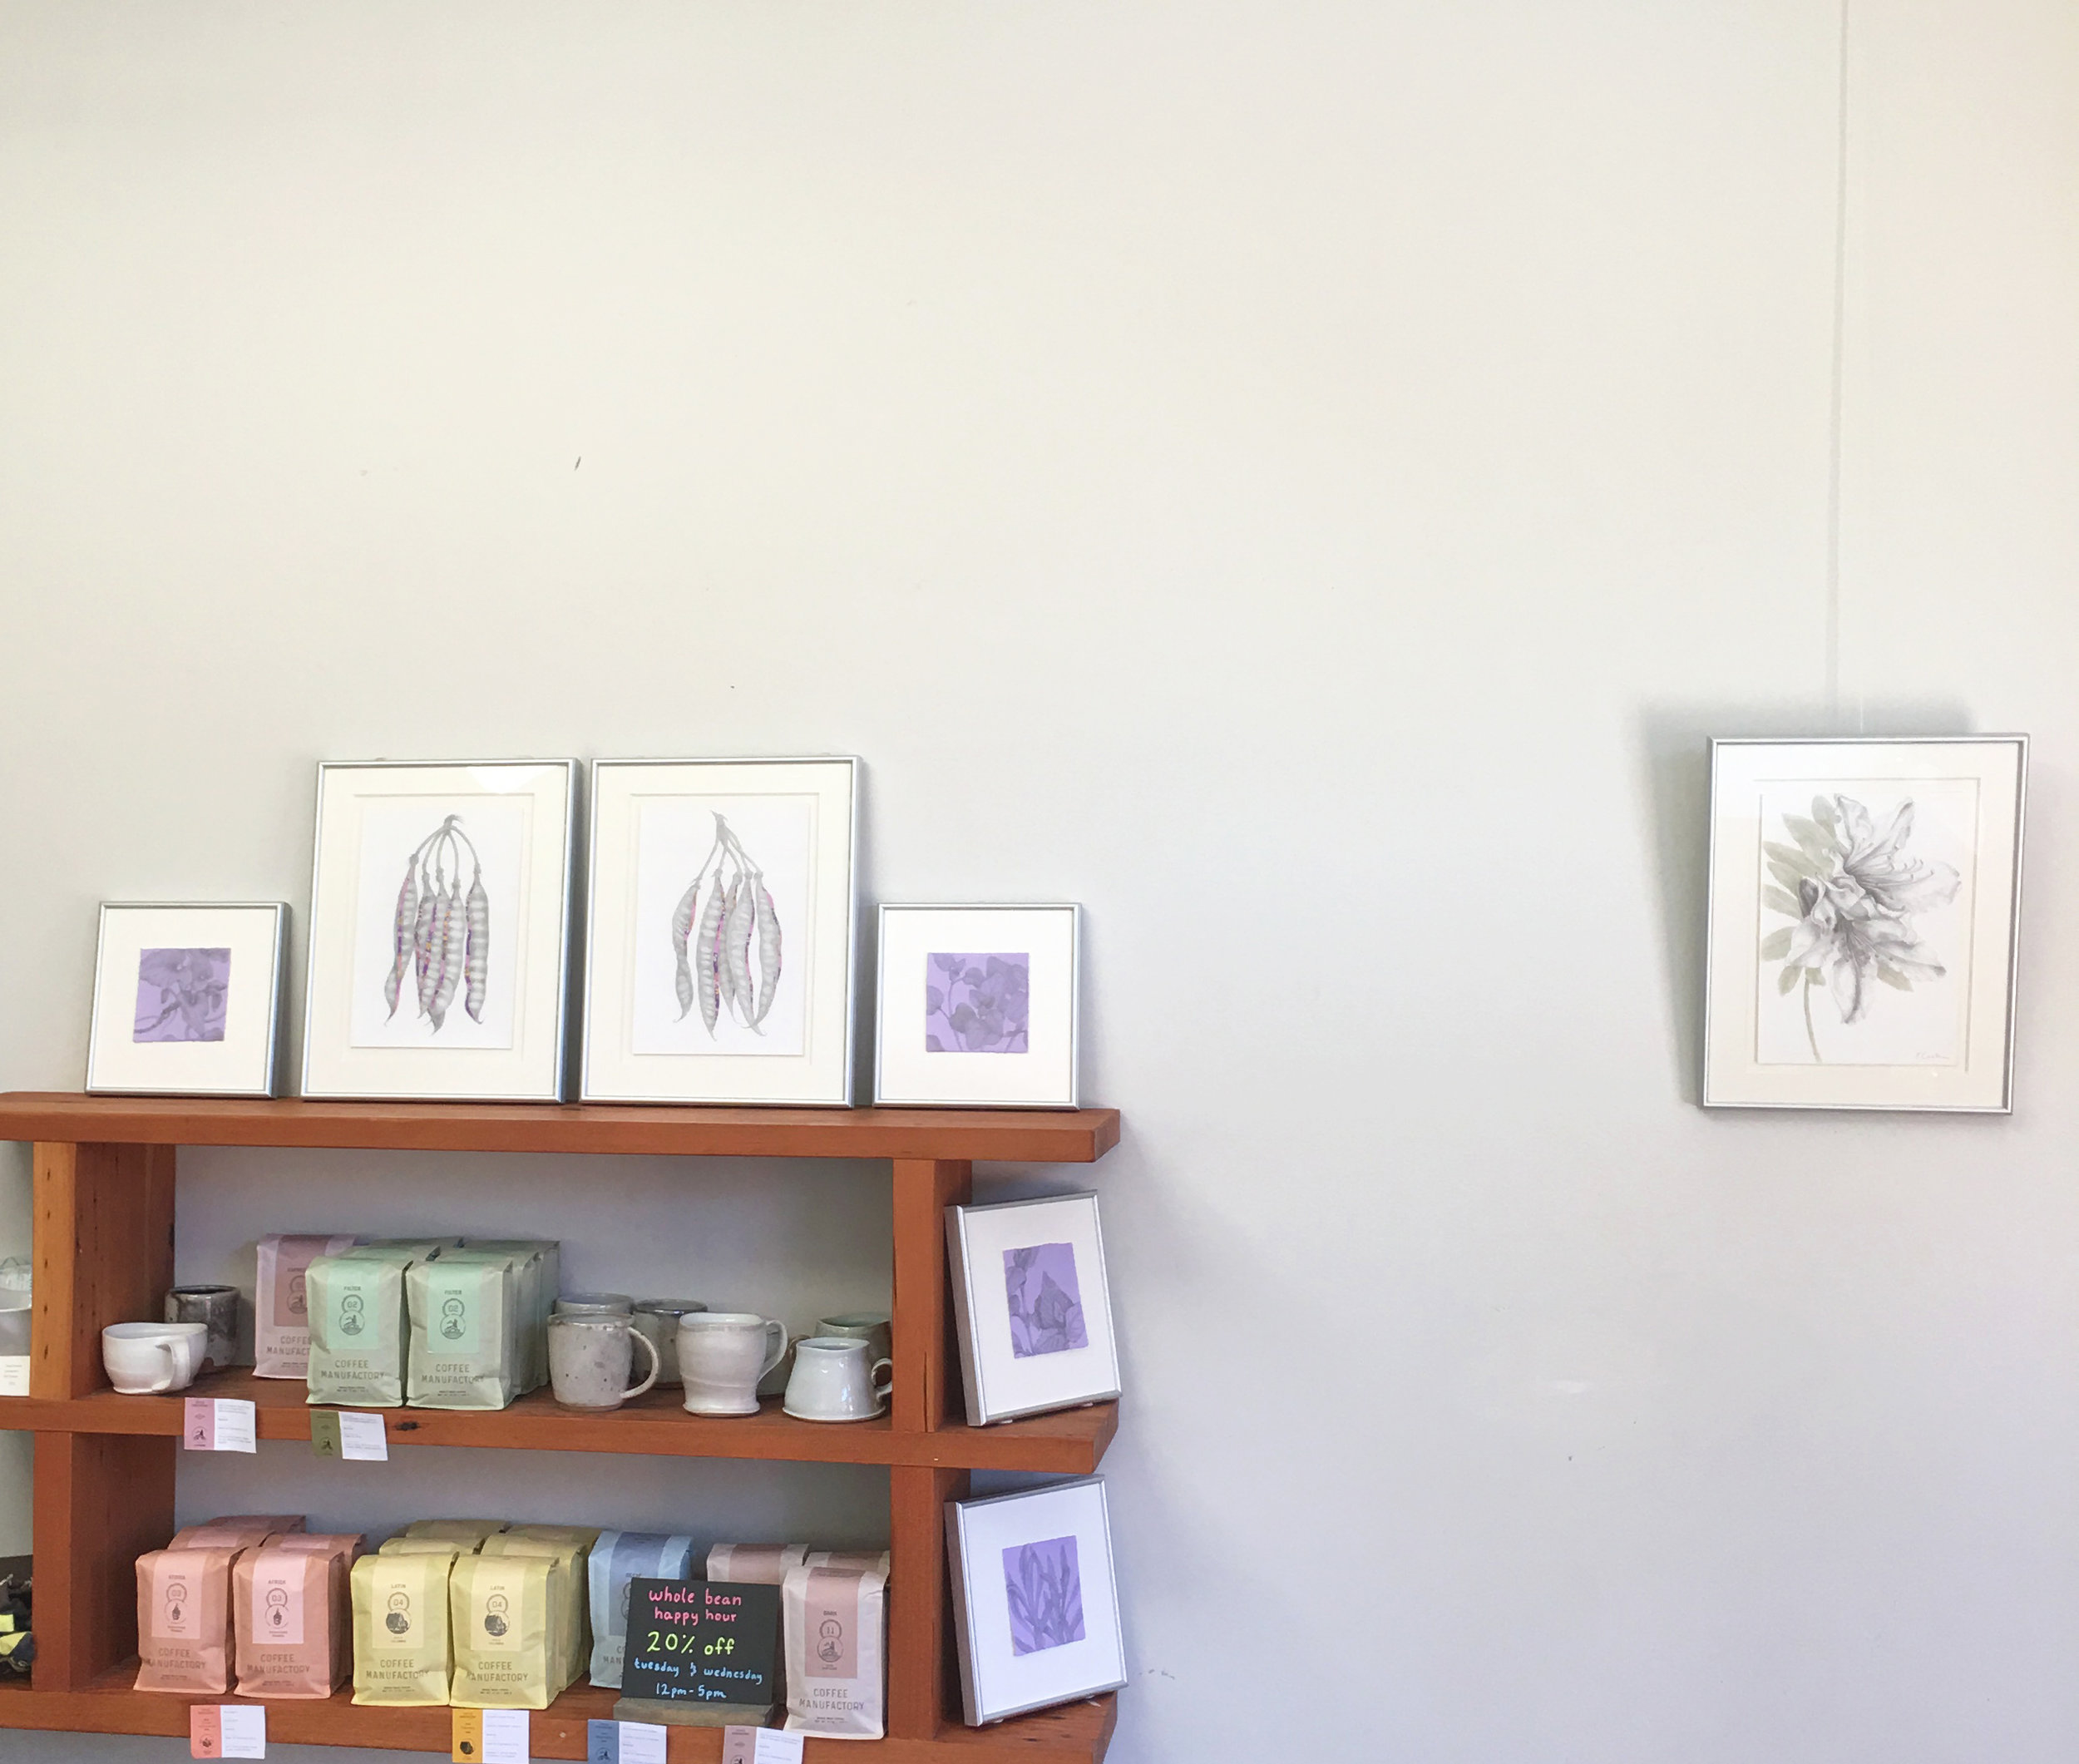 Glints of Light: Drawings in Silver, Subrosa, MLK Street, Oakland. The rest of the exhibition of botanical drawings